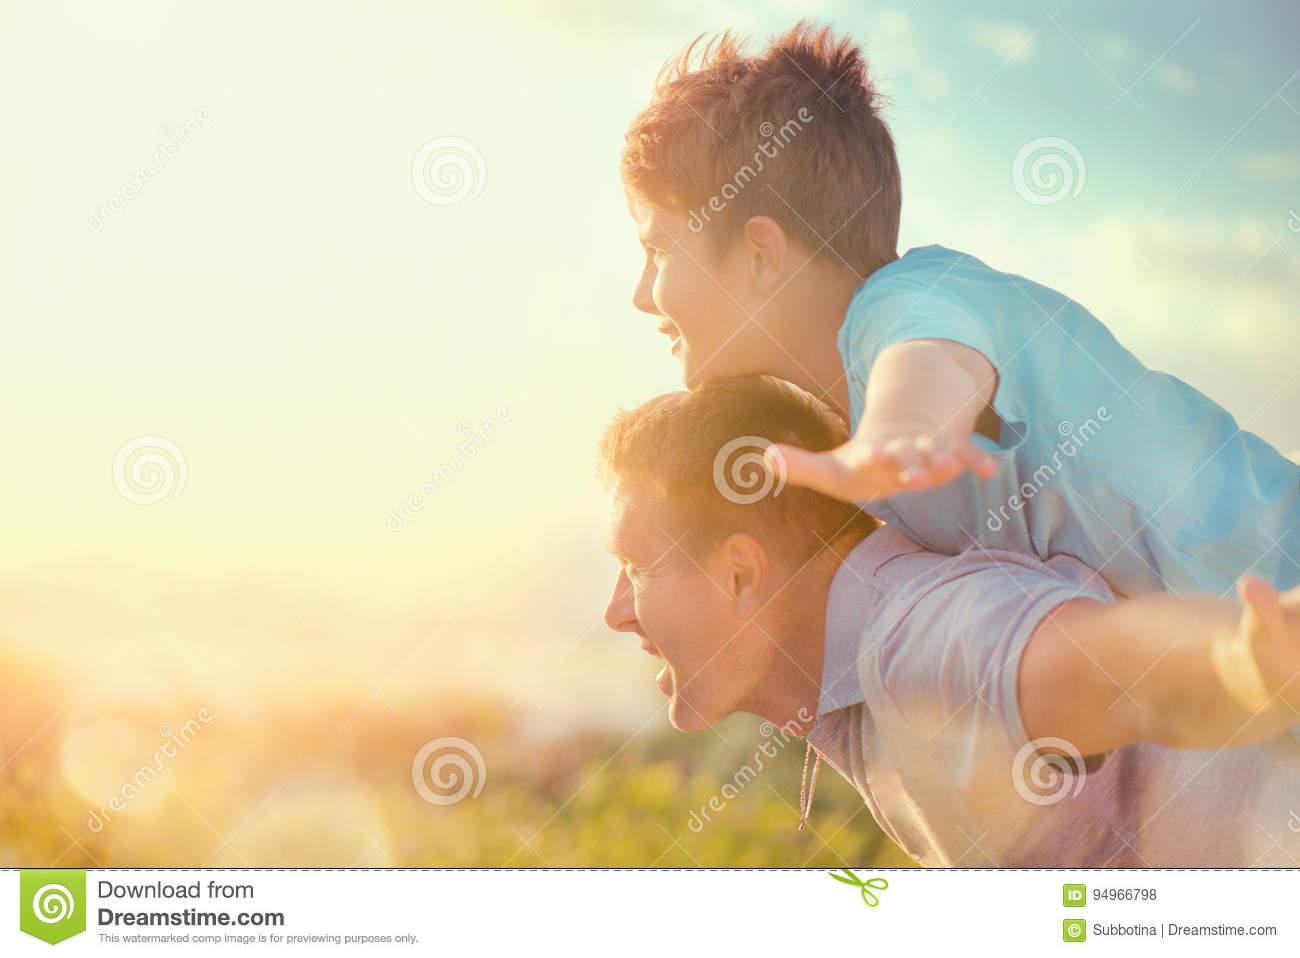 Happy father and son having fun over beautiful sky outdoors